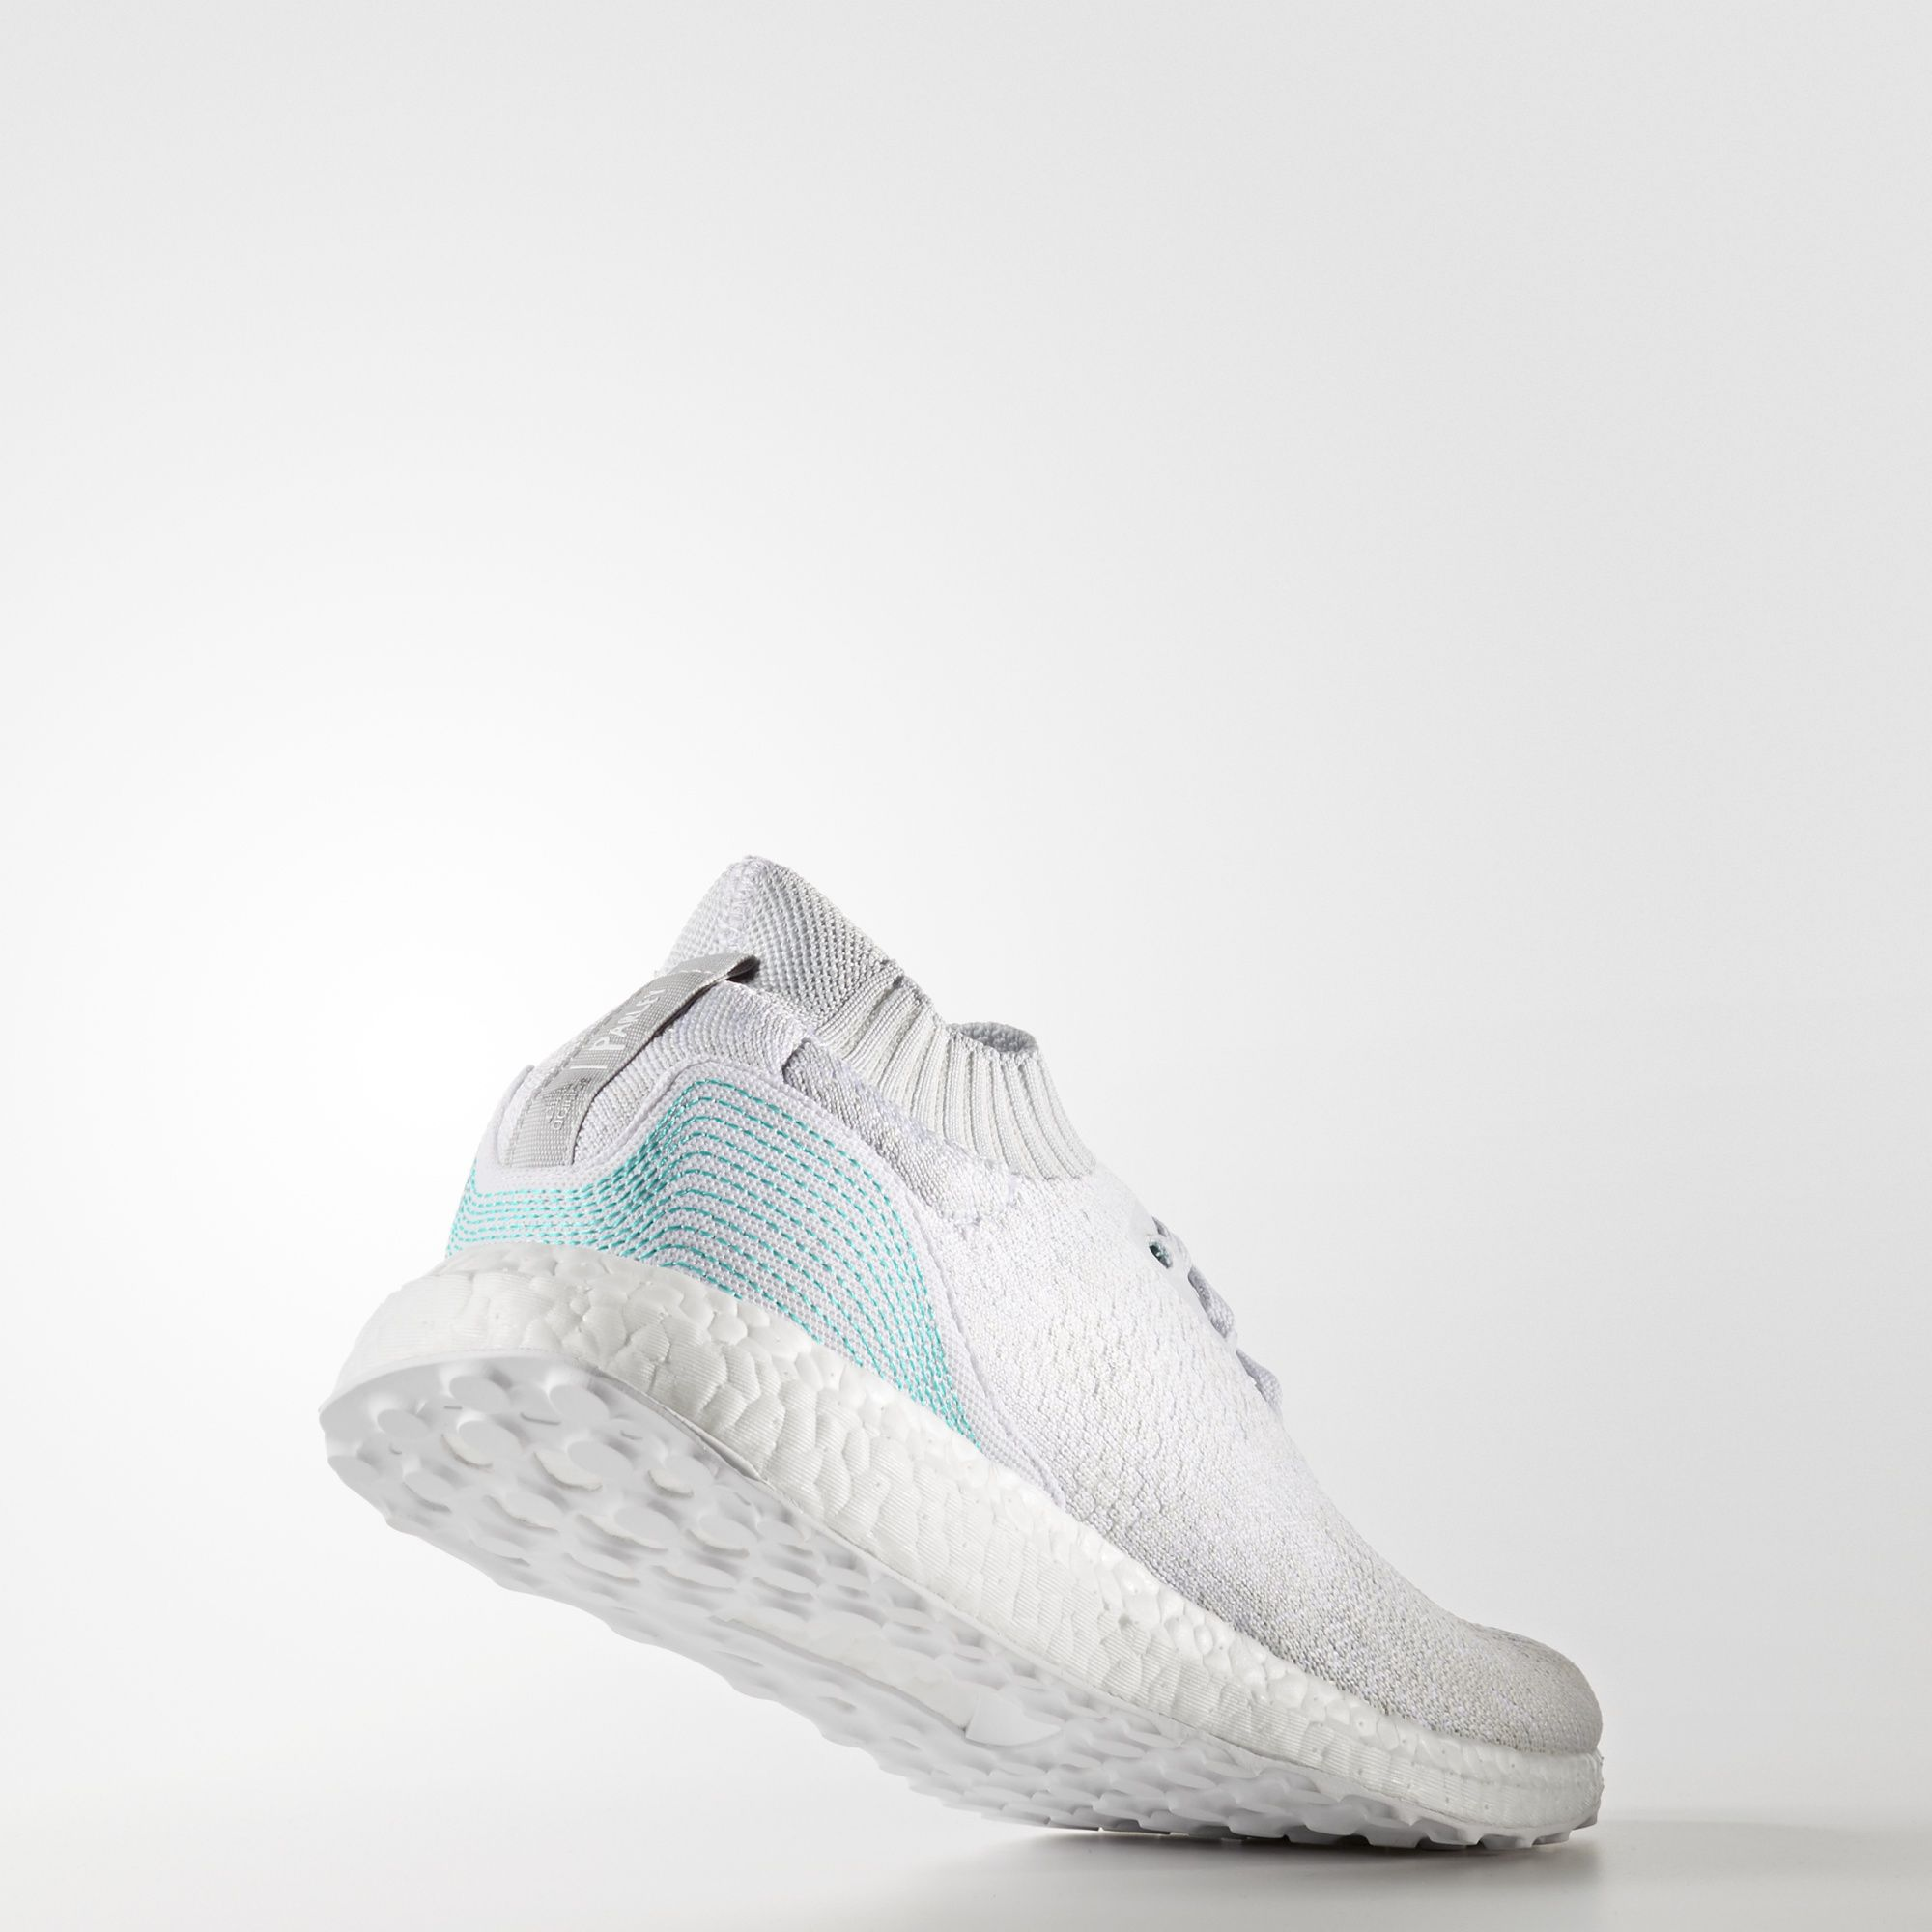 Parley x adidas Ultra Boost Uncaged Crystal White BB4073 3